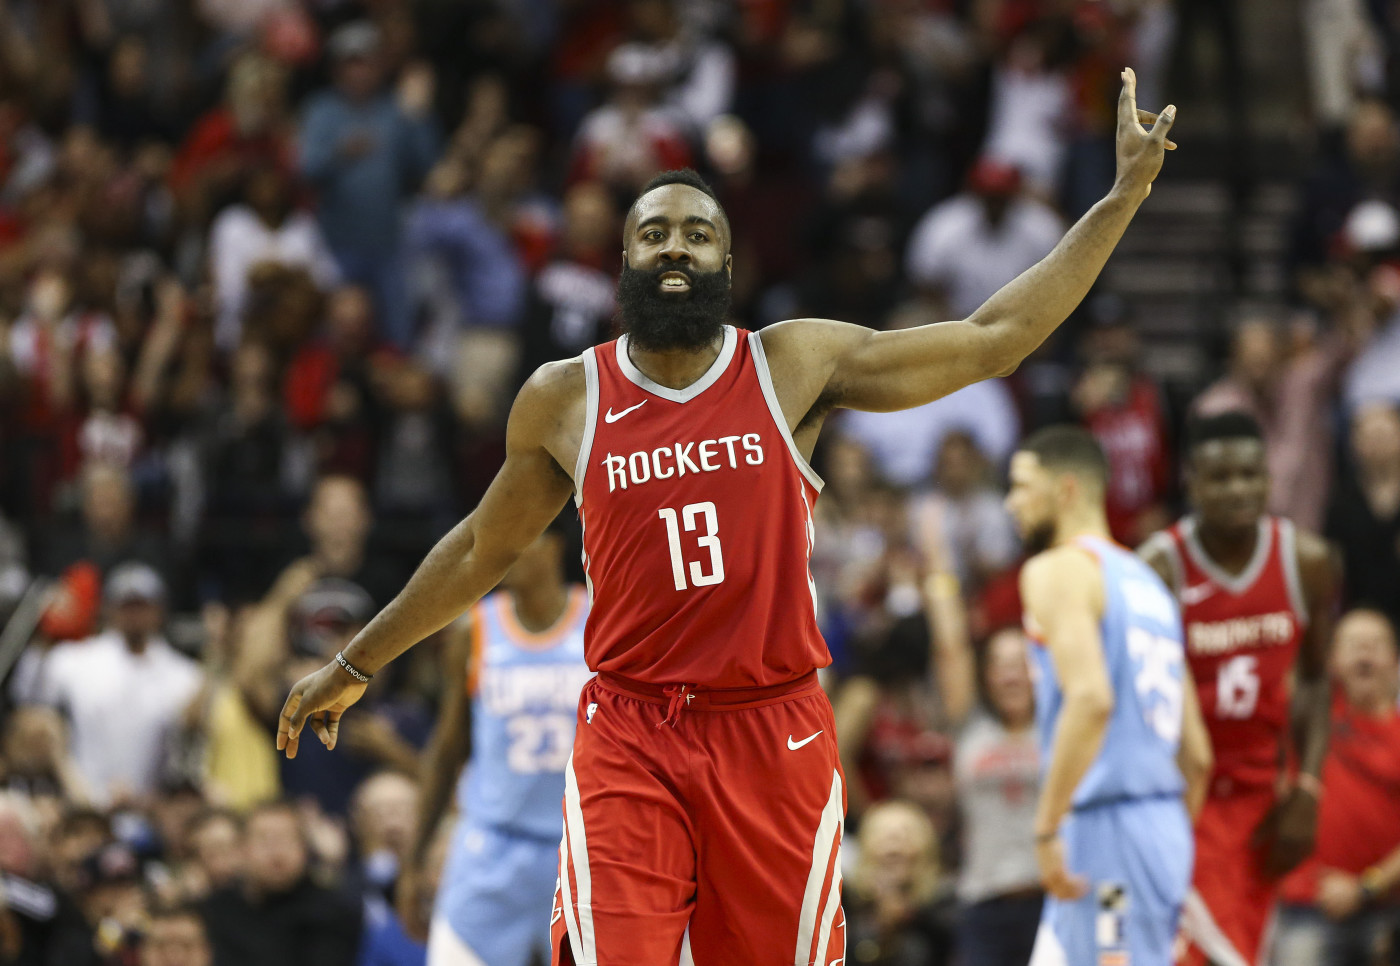 James Harden Clippers Rockets March 2018